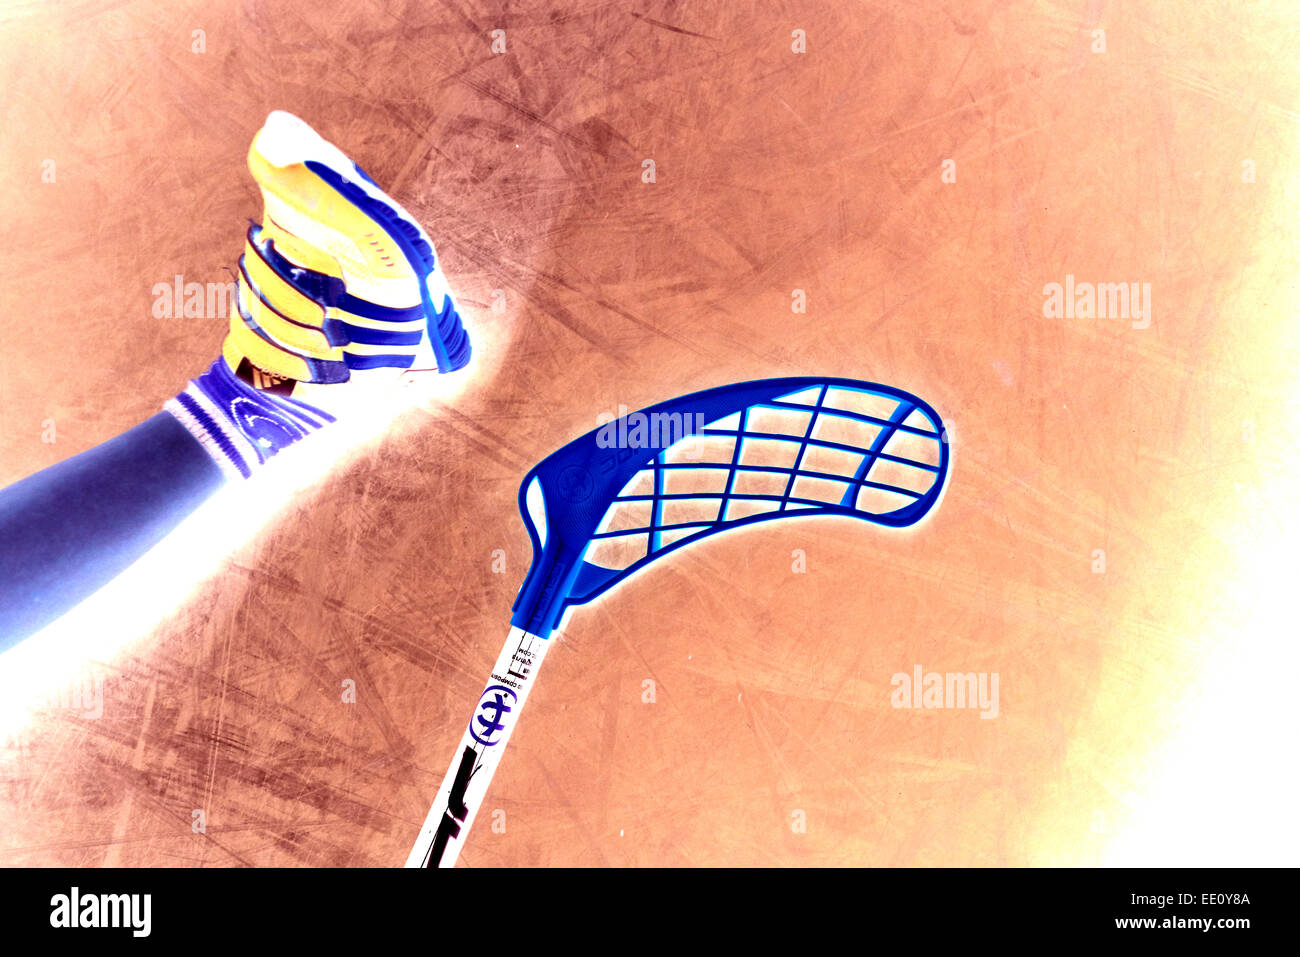 Children boys schoolchildren playing floorball (floor hockey) match in school gym hall with plastic hockey sticks - Stock Image